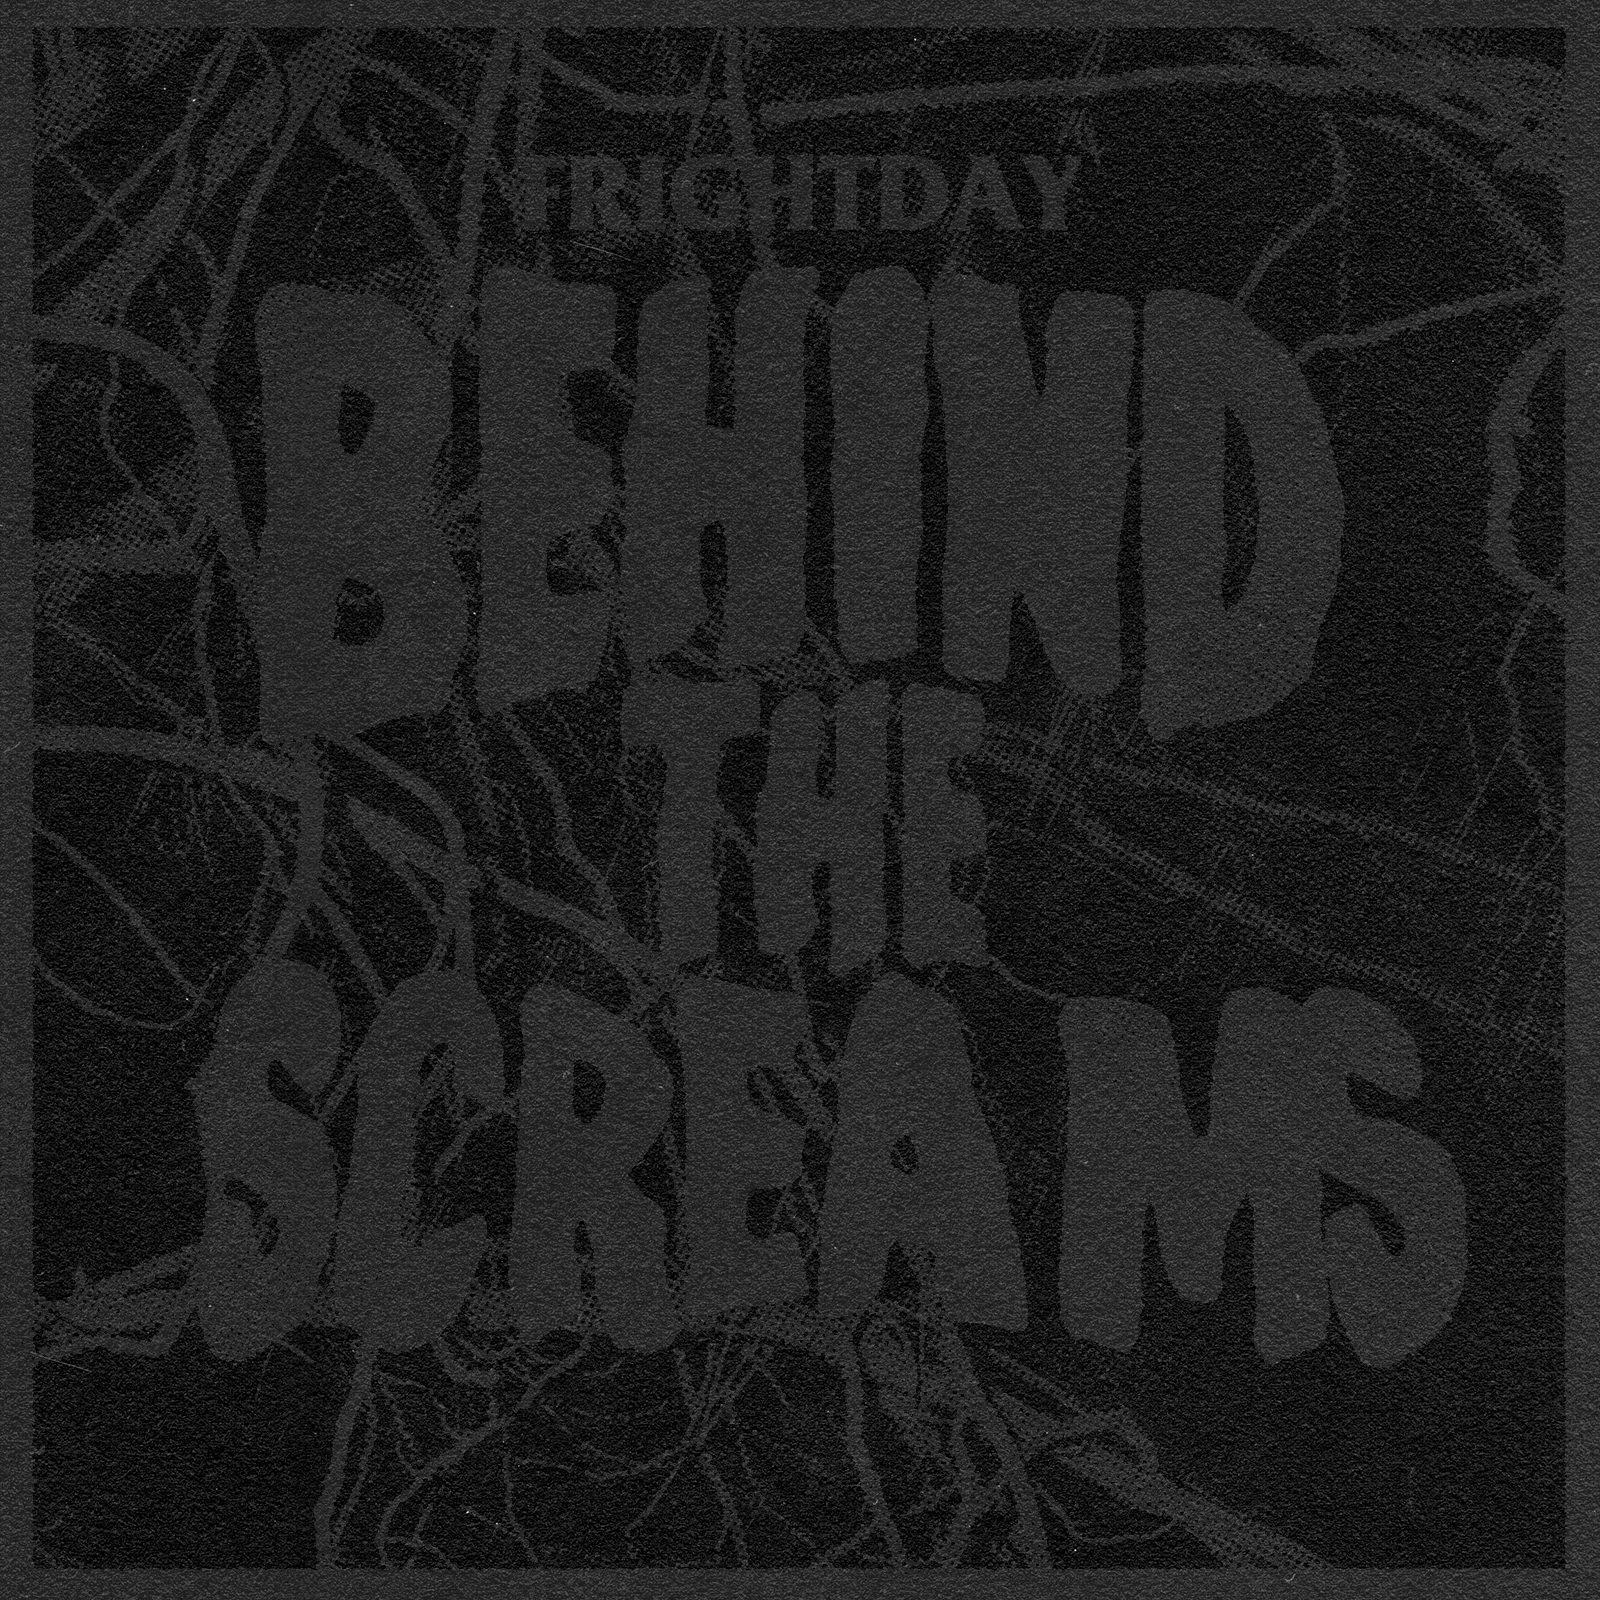 Behind the Screams: Our Worst Critics (Excerpt)